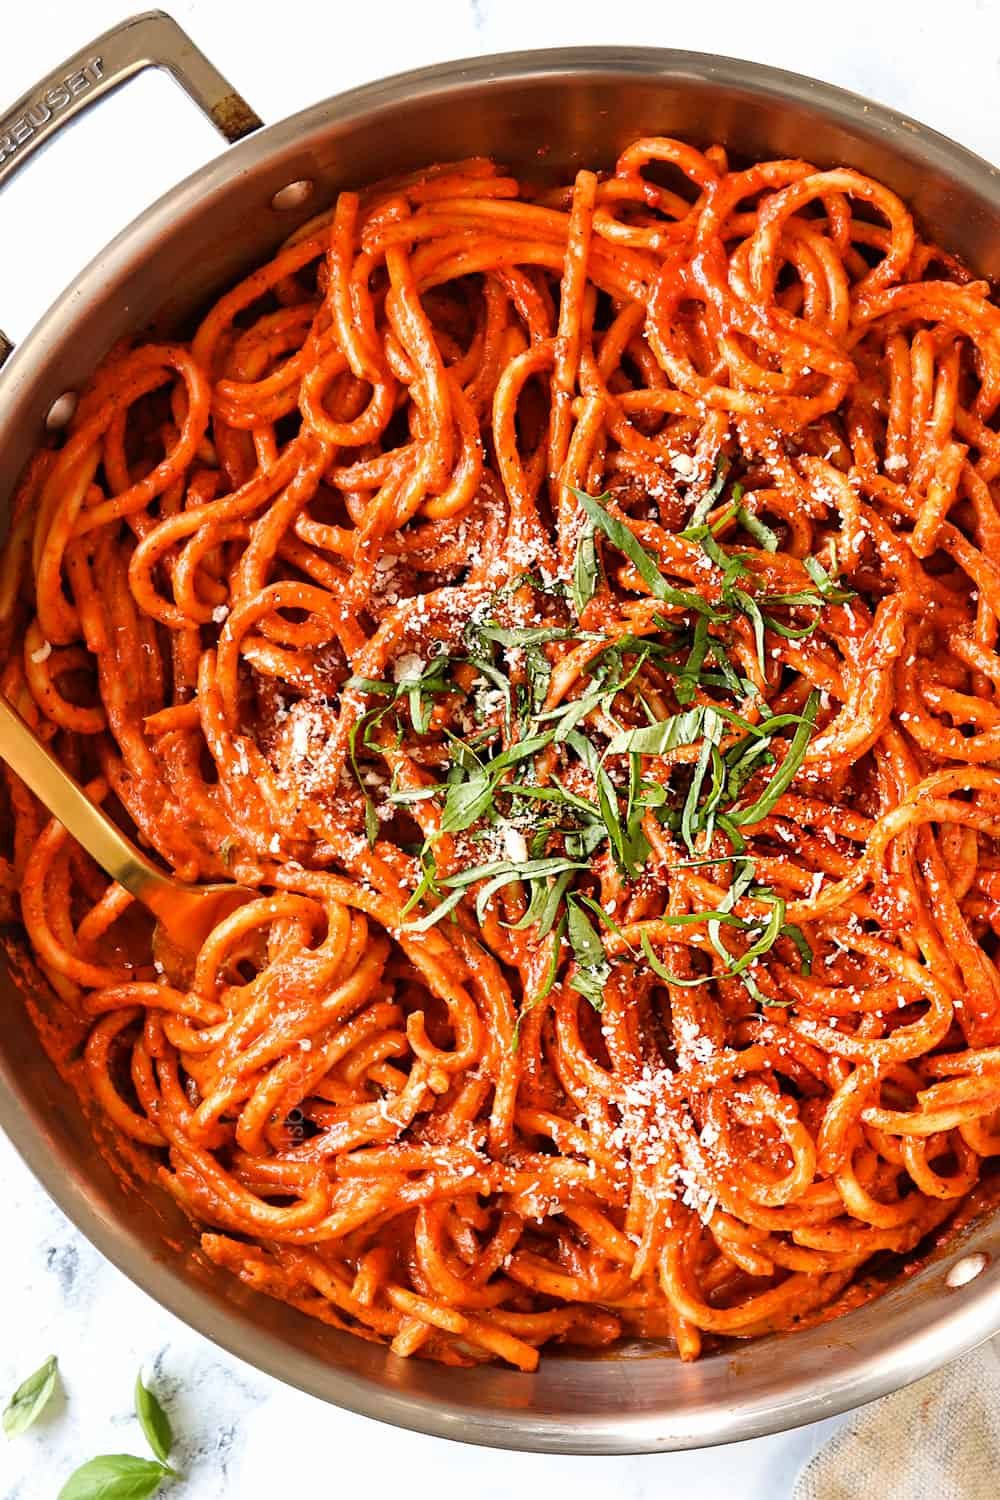 top view of roasted red pepper pasta in a skillet garnished with basil